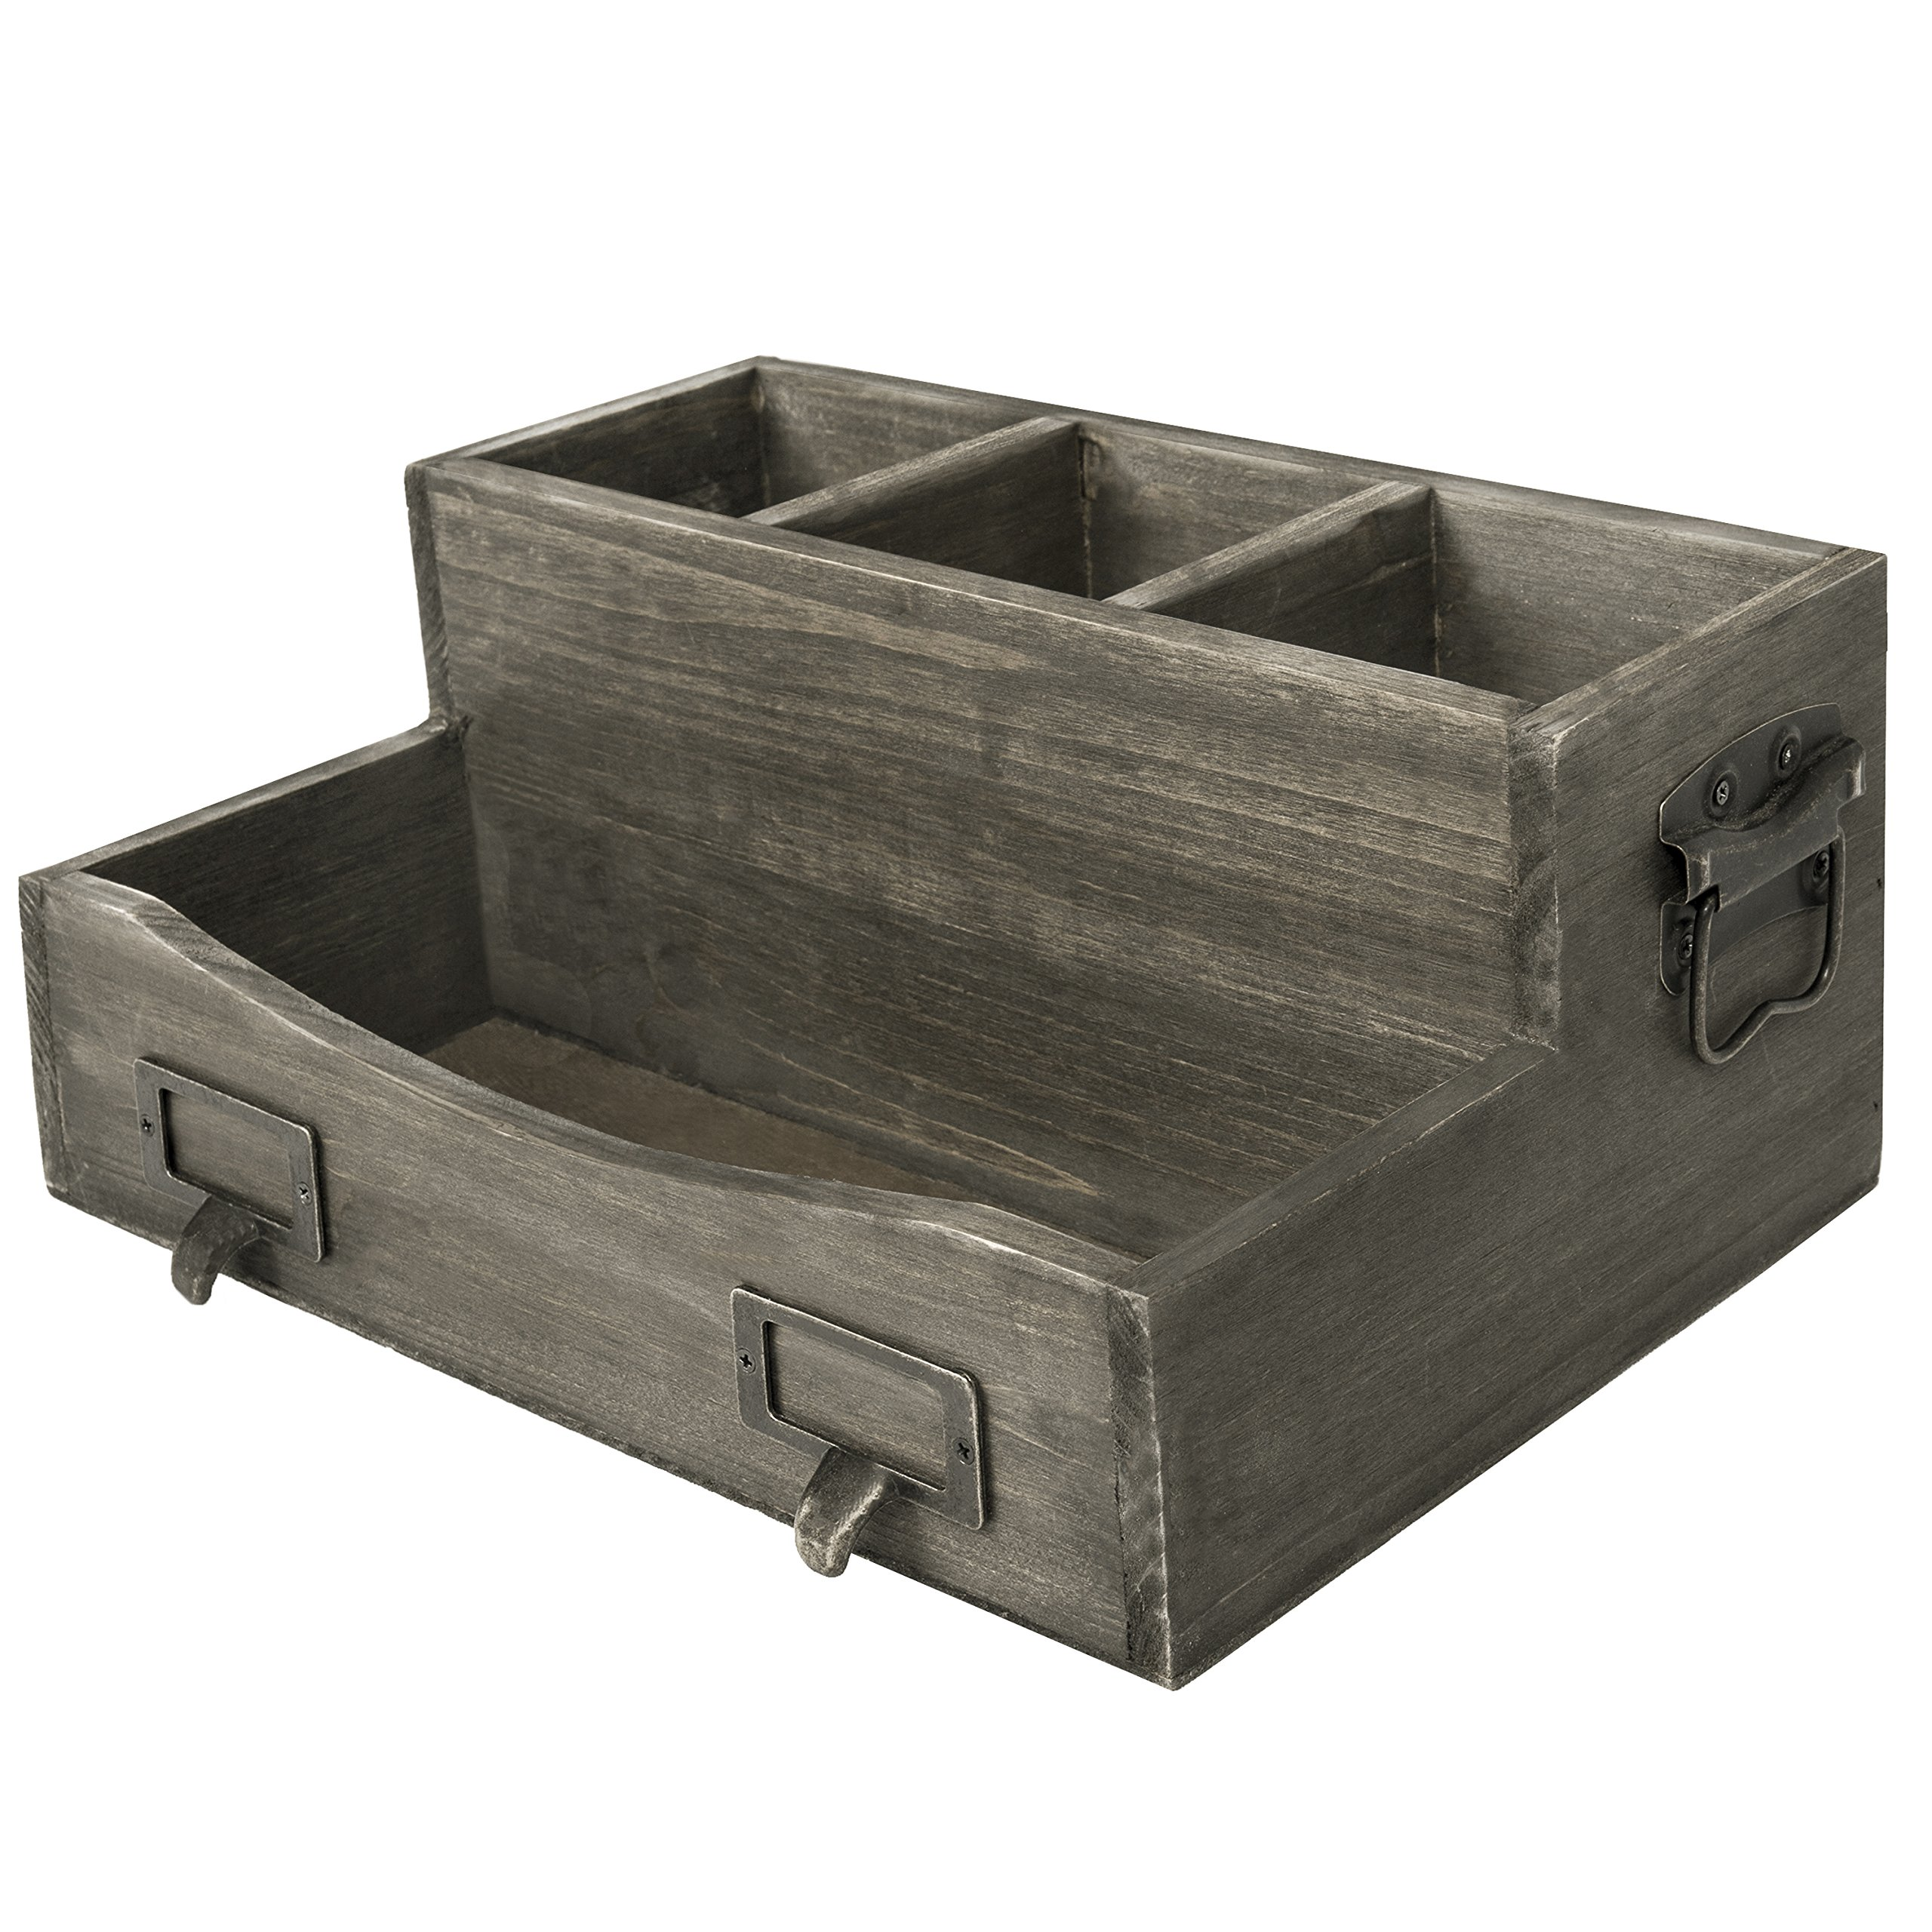 Barnwood Brown Desktop Magazine & Office Supplies Organizer with Metal Drawer-Pull Labels & Side Handles by MyGift (Image #2)